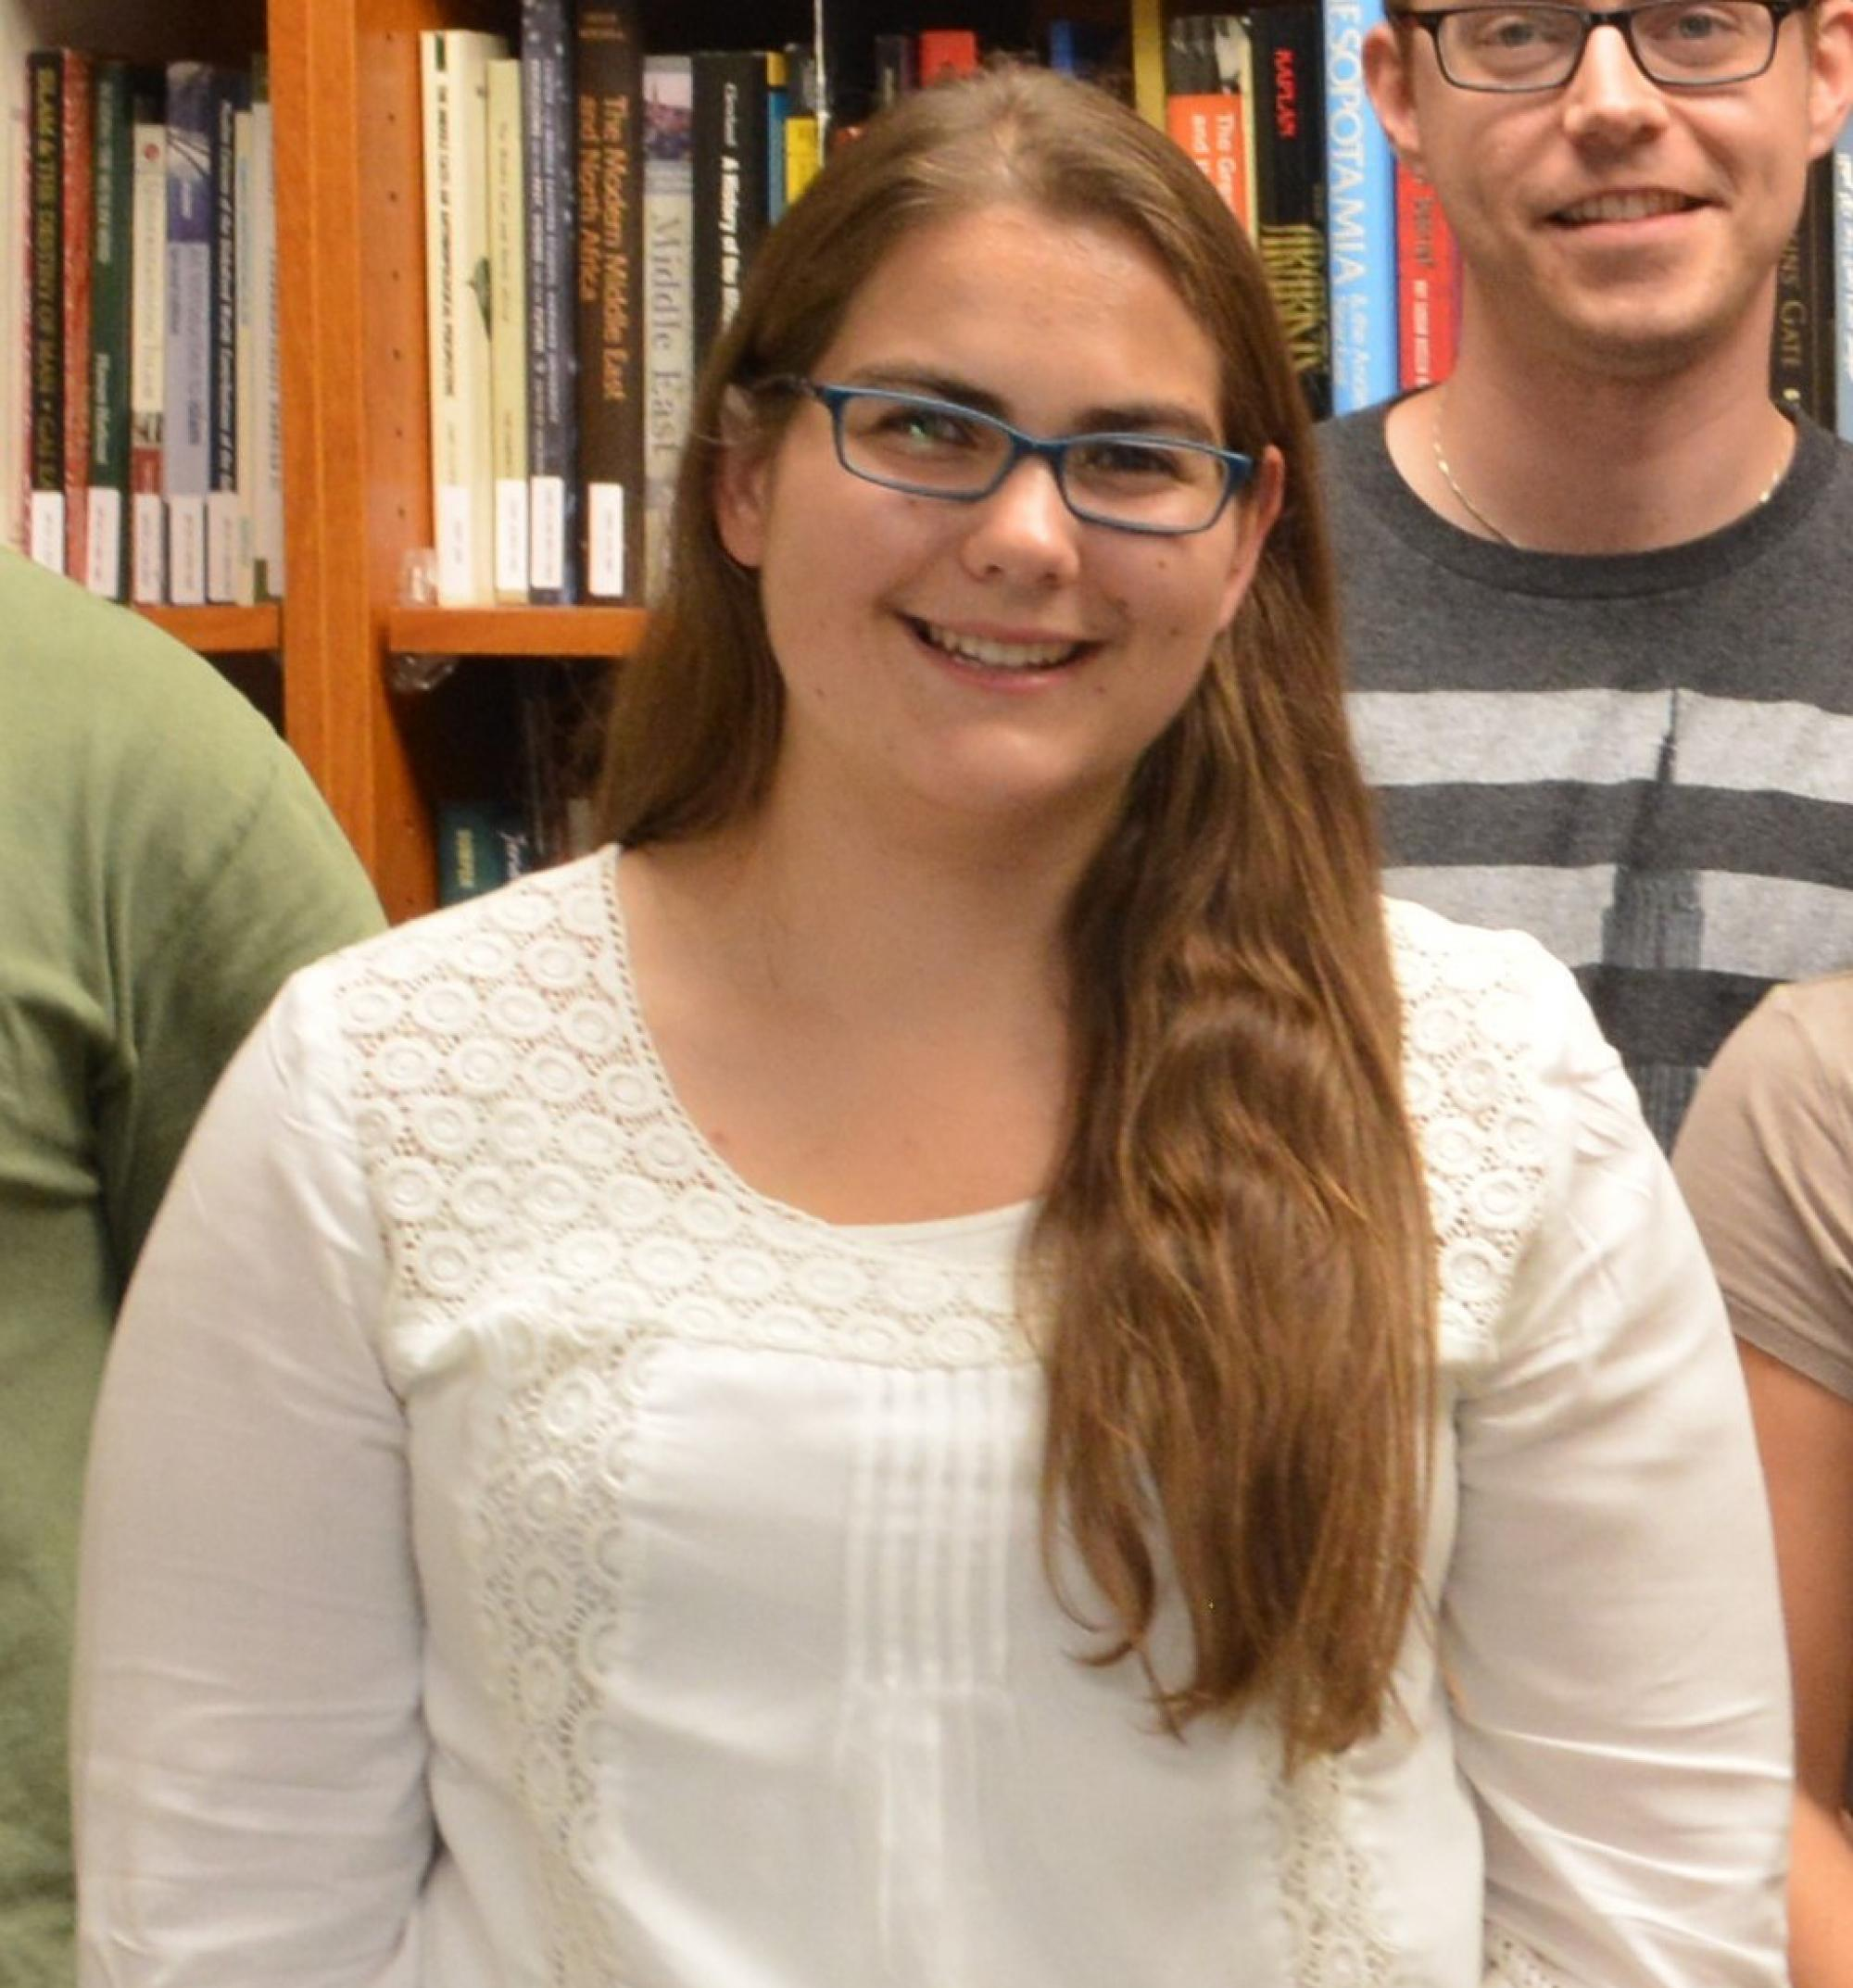 Catherine Witt parlayed a summer camp Arabic program into a bachelor's degree with triple majors in linguistics, Arabic, and Middle Eastern and North African studies. She is hoping to add a master's degree in public health to help reach her goal of workin